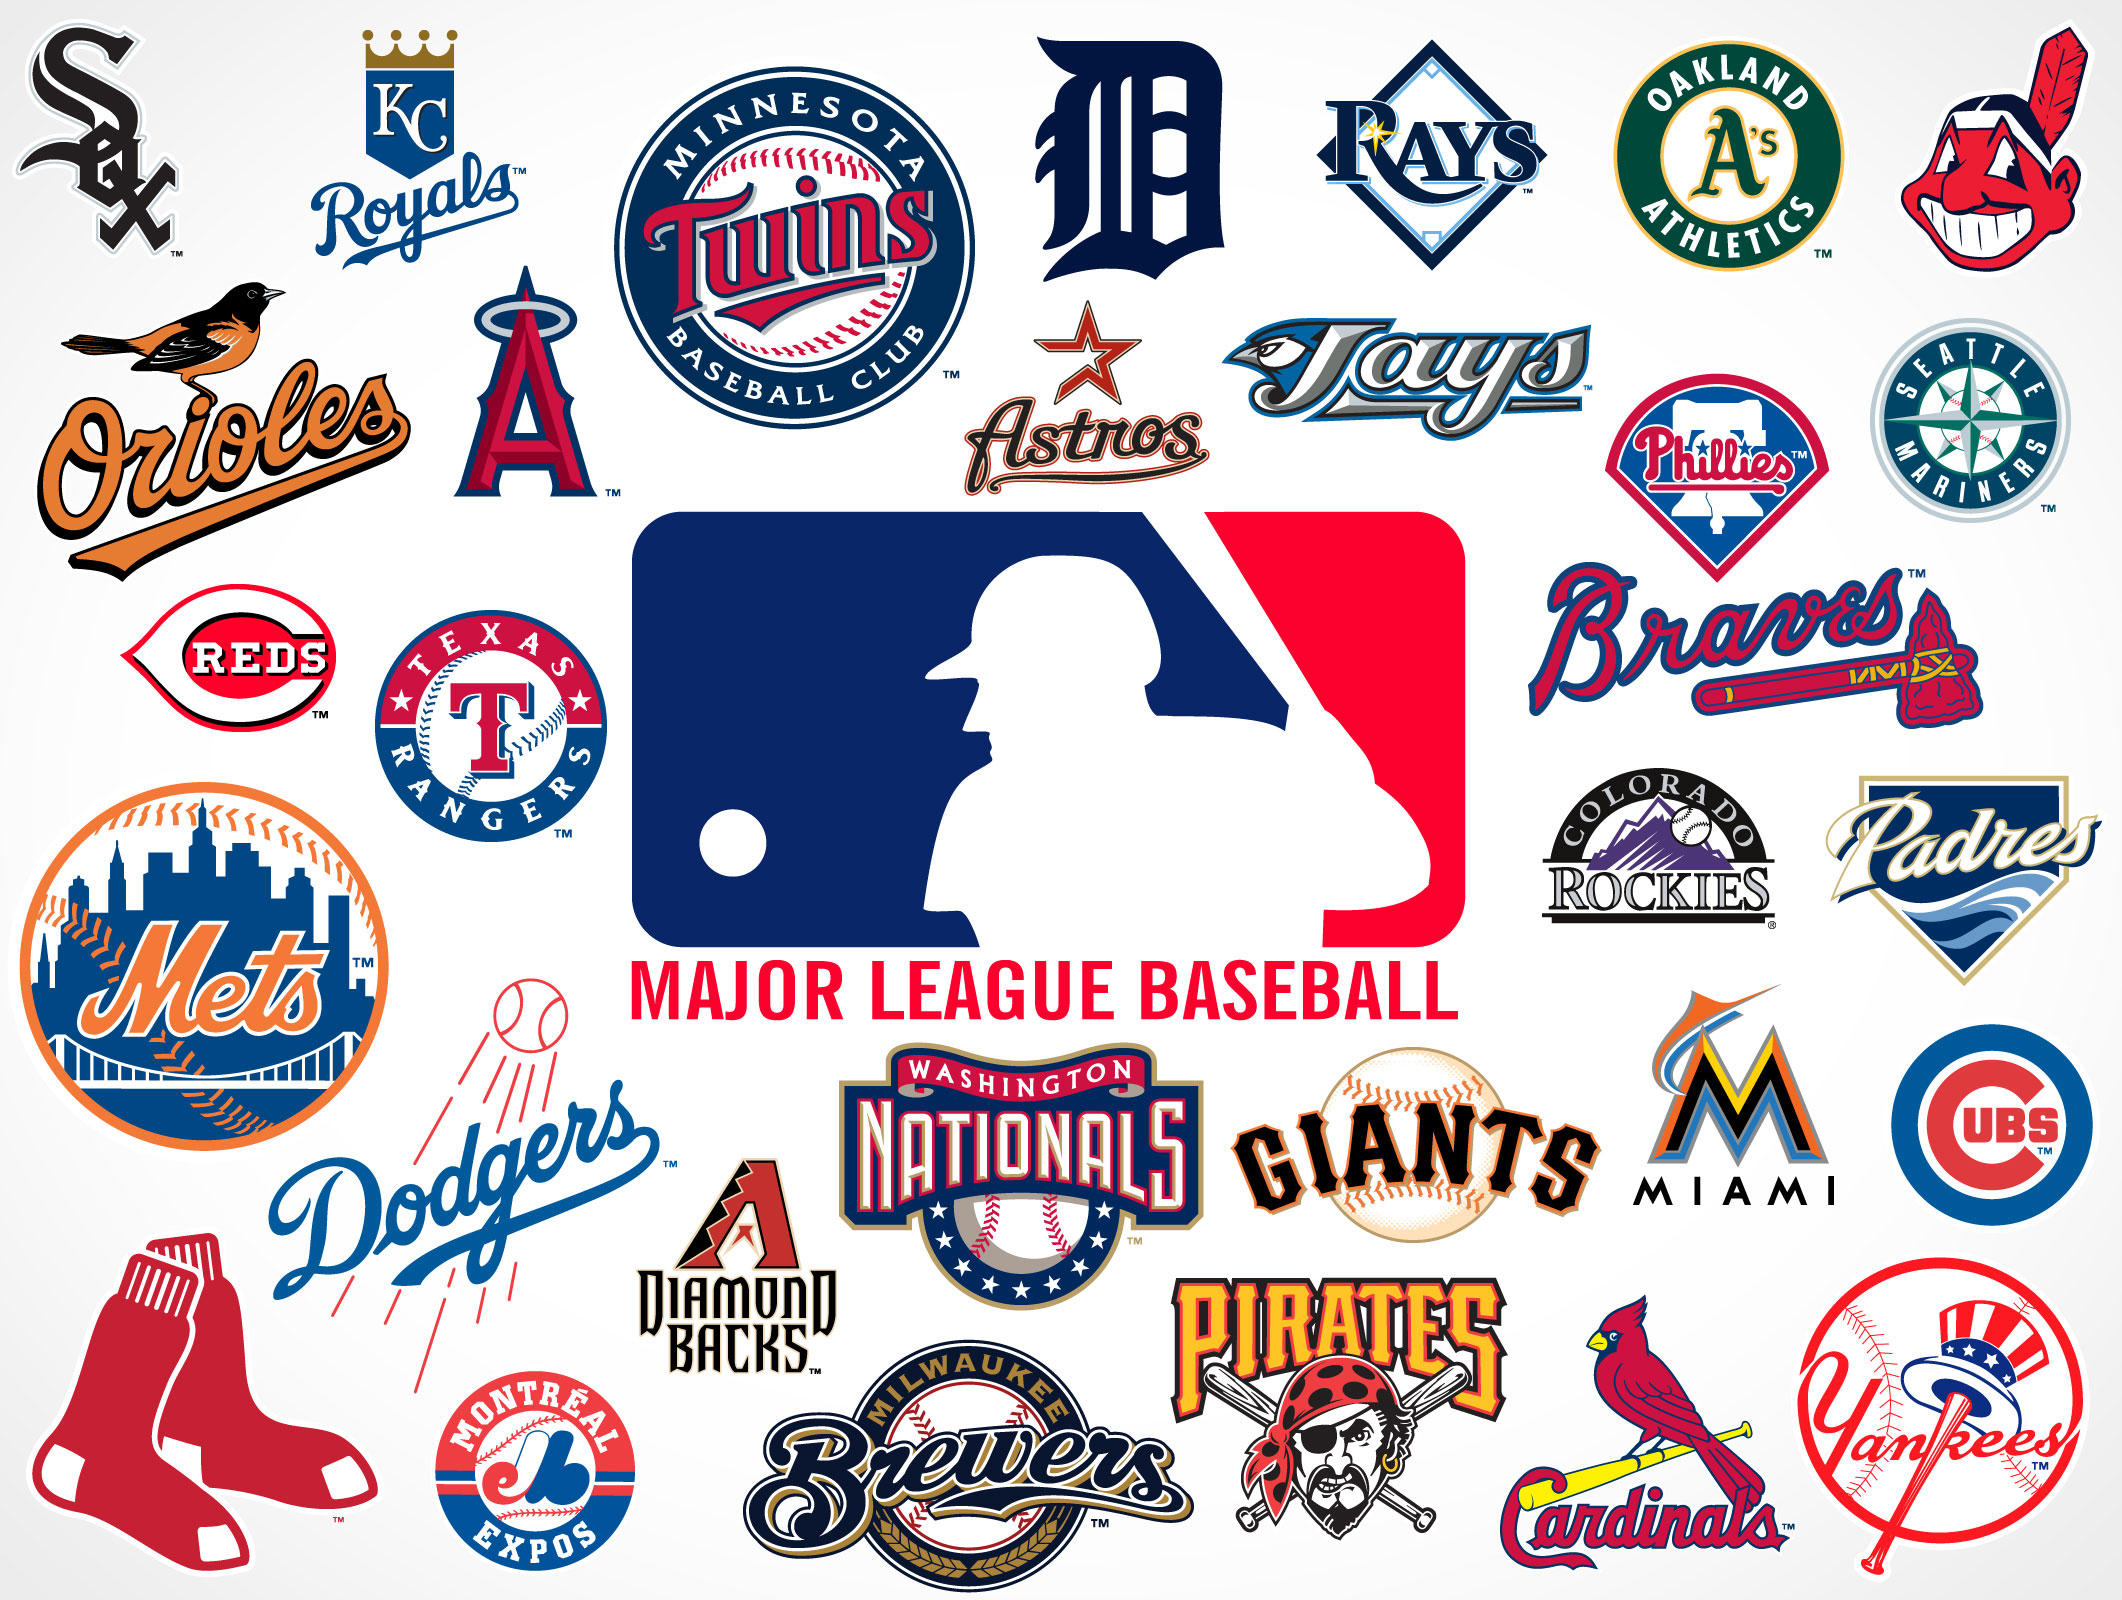 Baseball teams logos